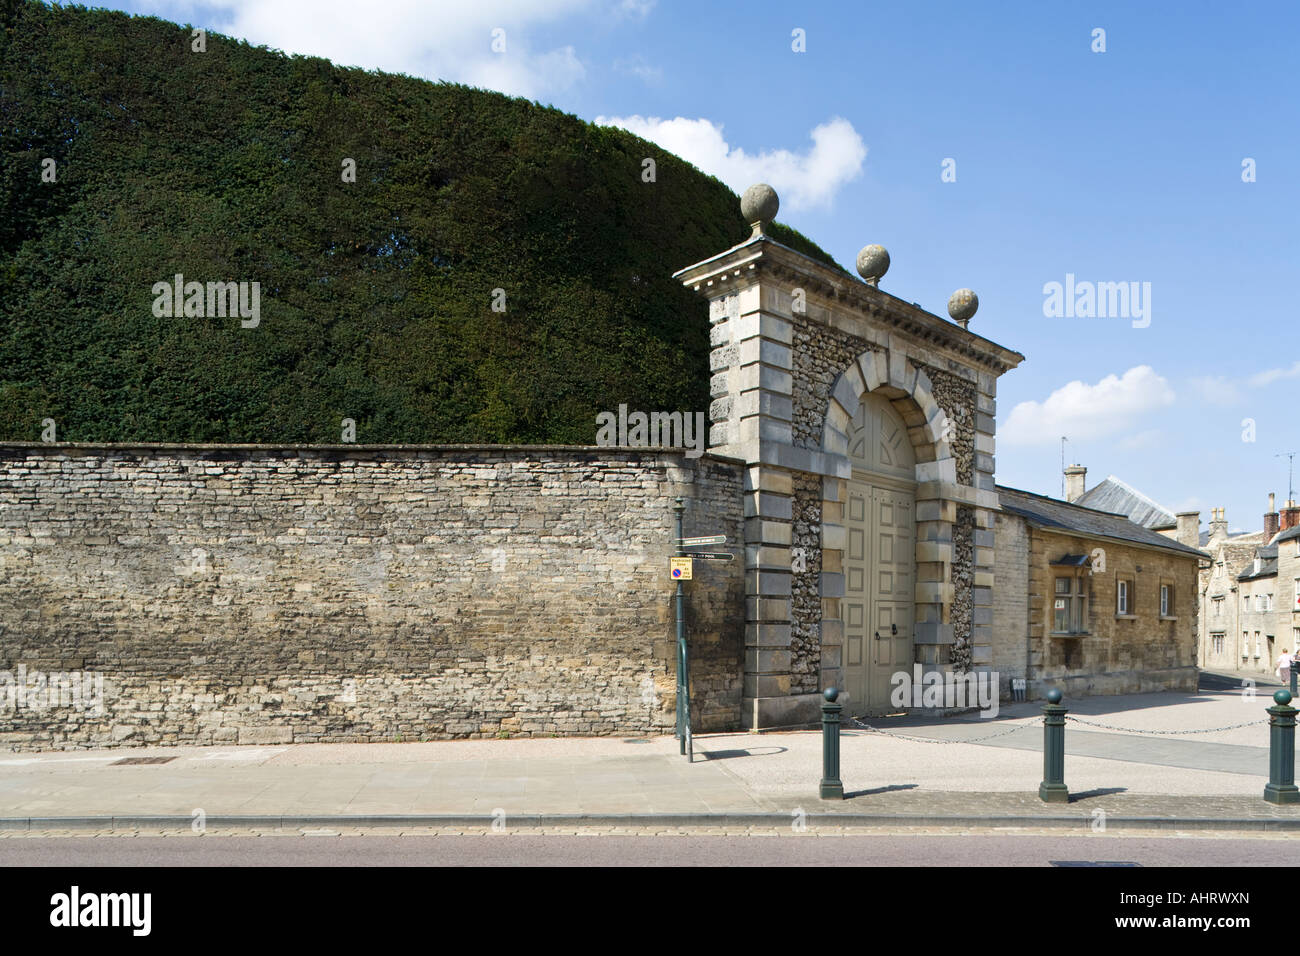 The main gates to Cirencester Park with the famous yew hedge  in the Cotswold town of Cirencester, Gloucestershire - Stock Image